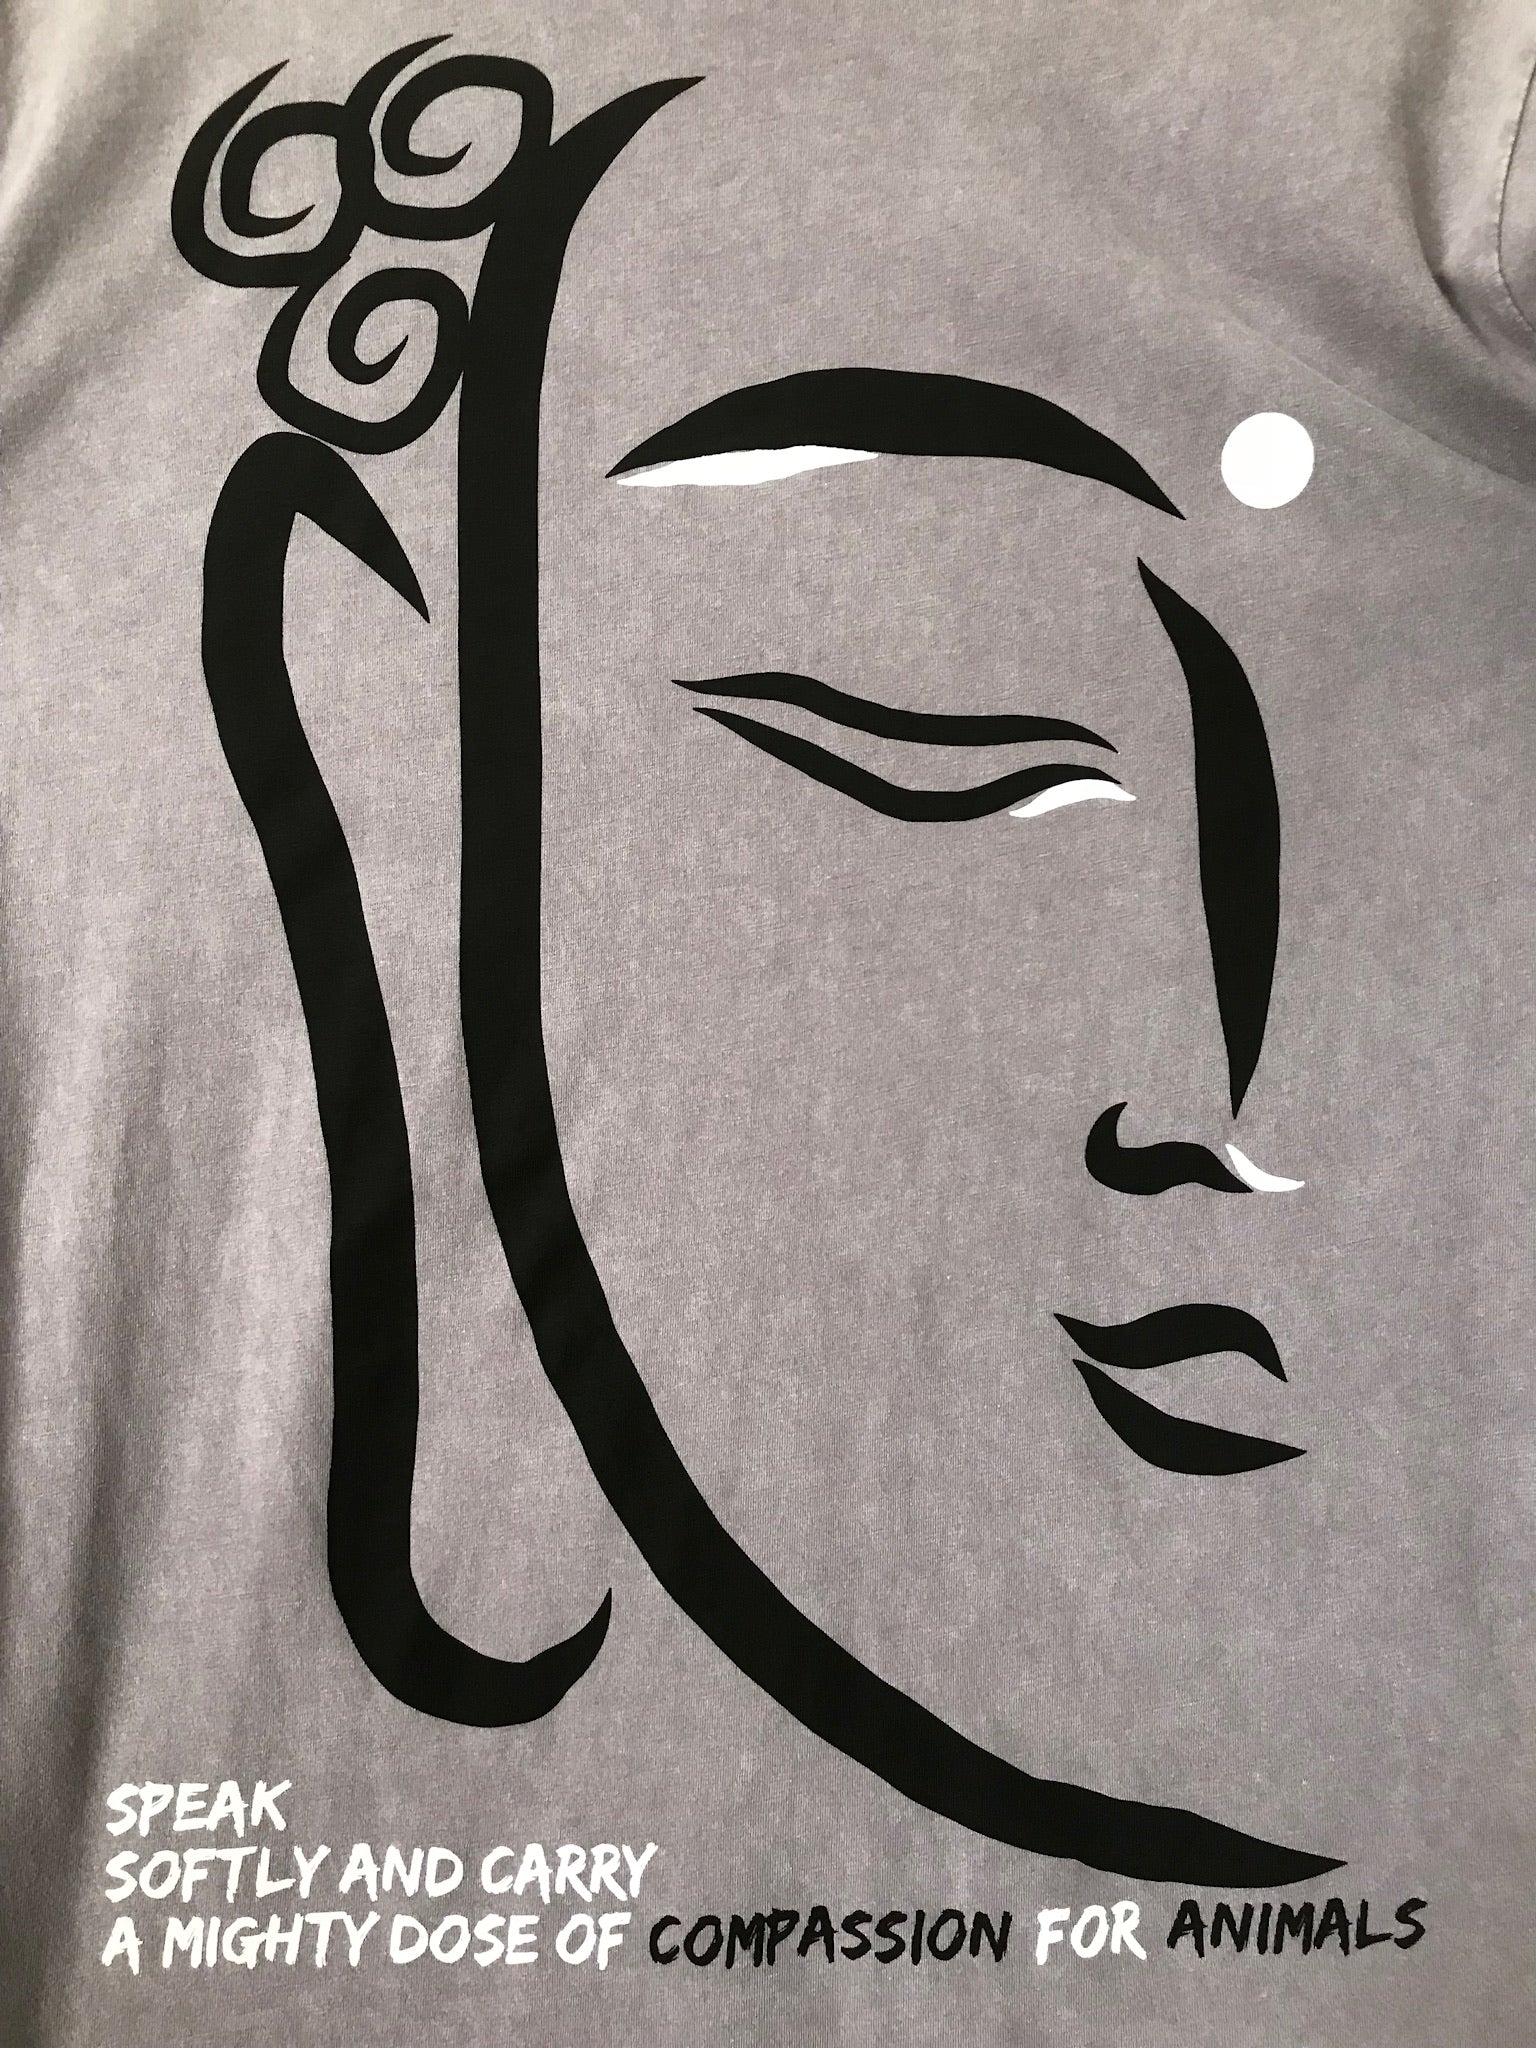 Buddha, love, compassion, vegan, fashion, animal rights